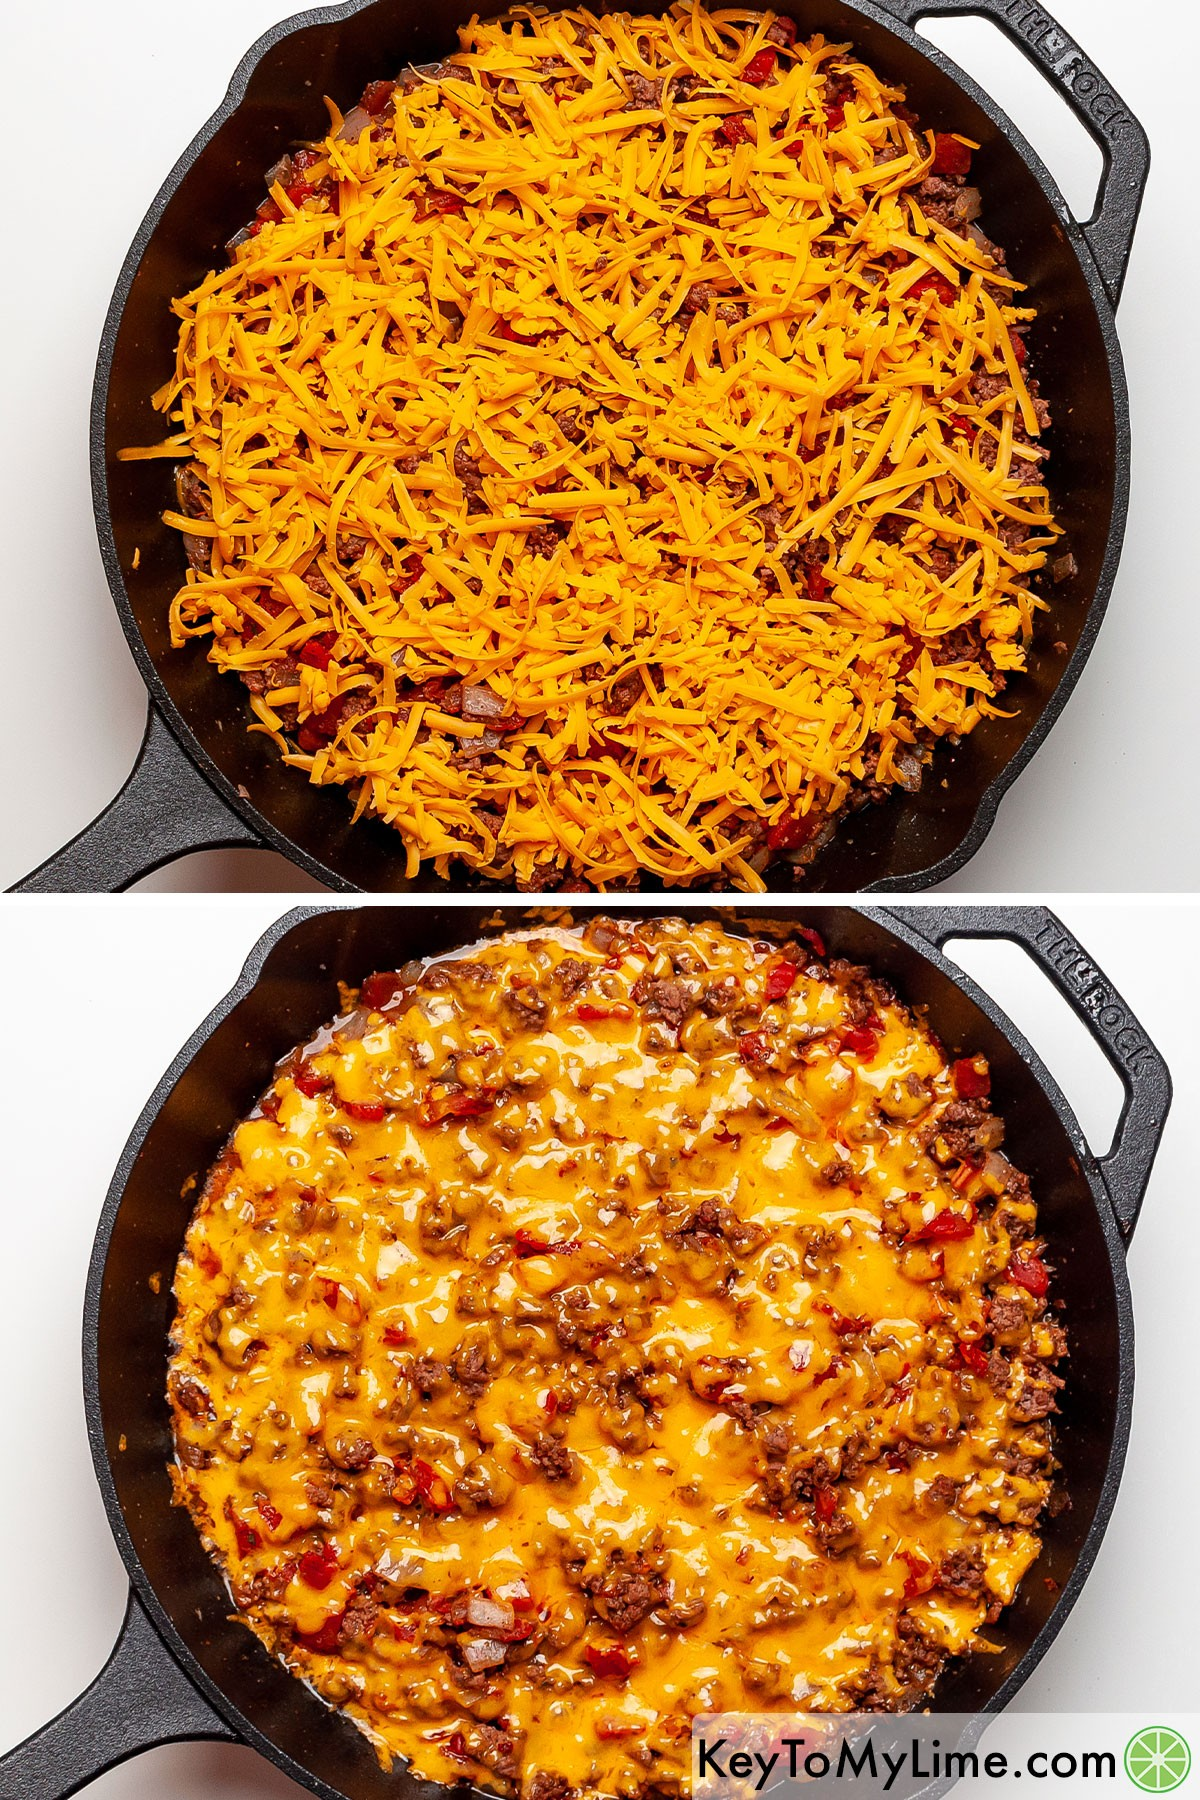 A process collage showing melting cheese on ground beef taco meat.